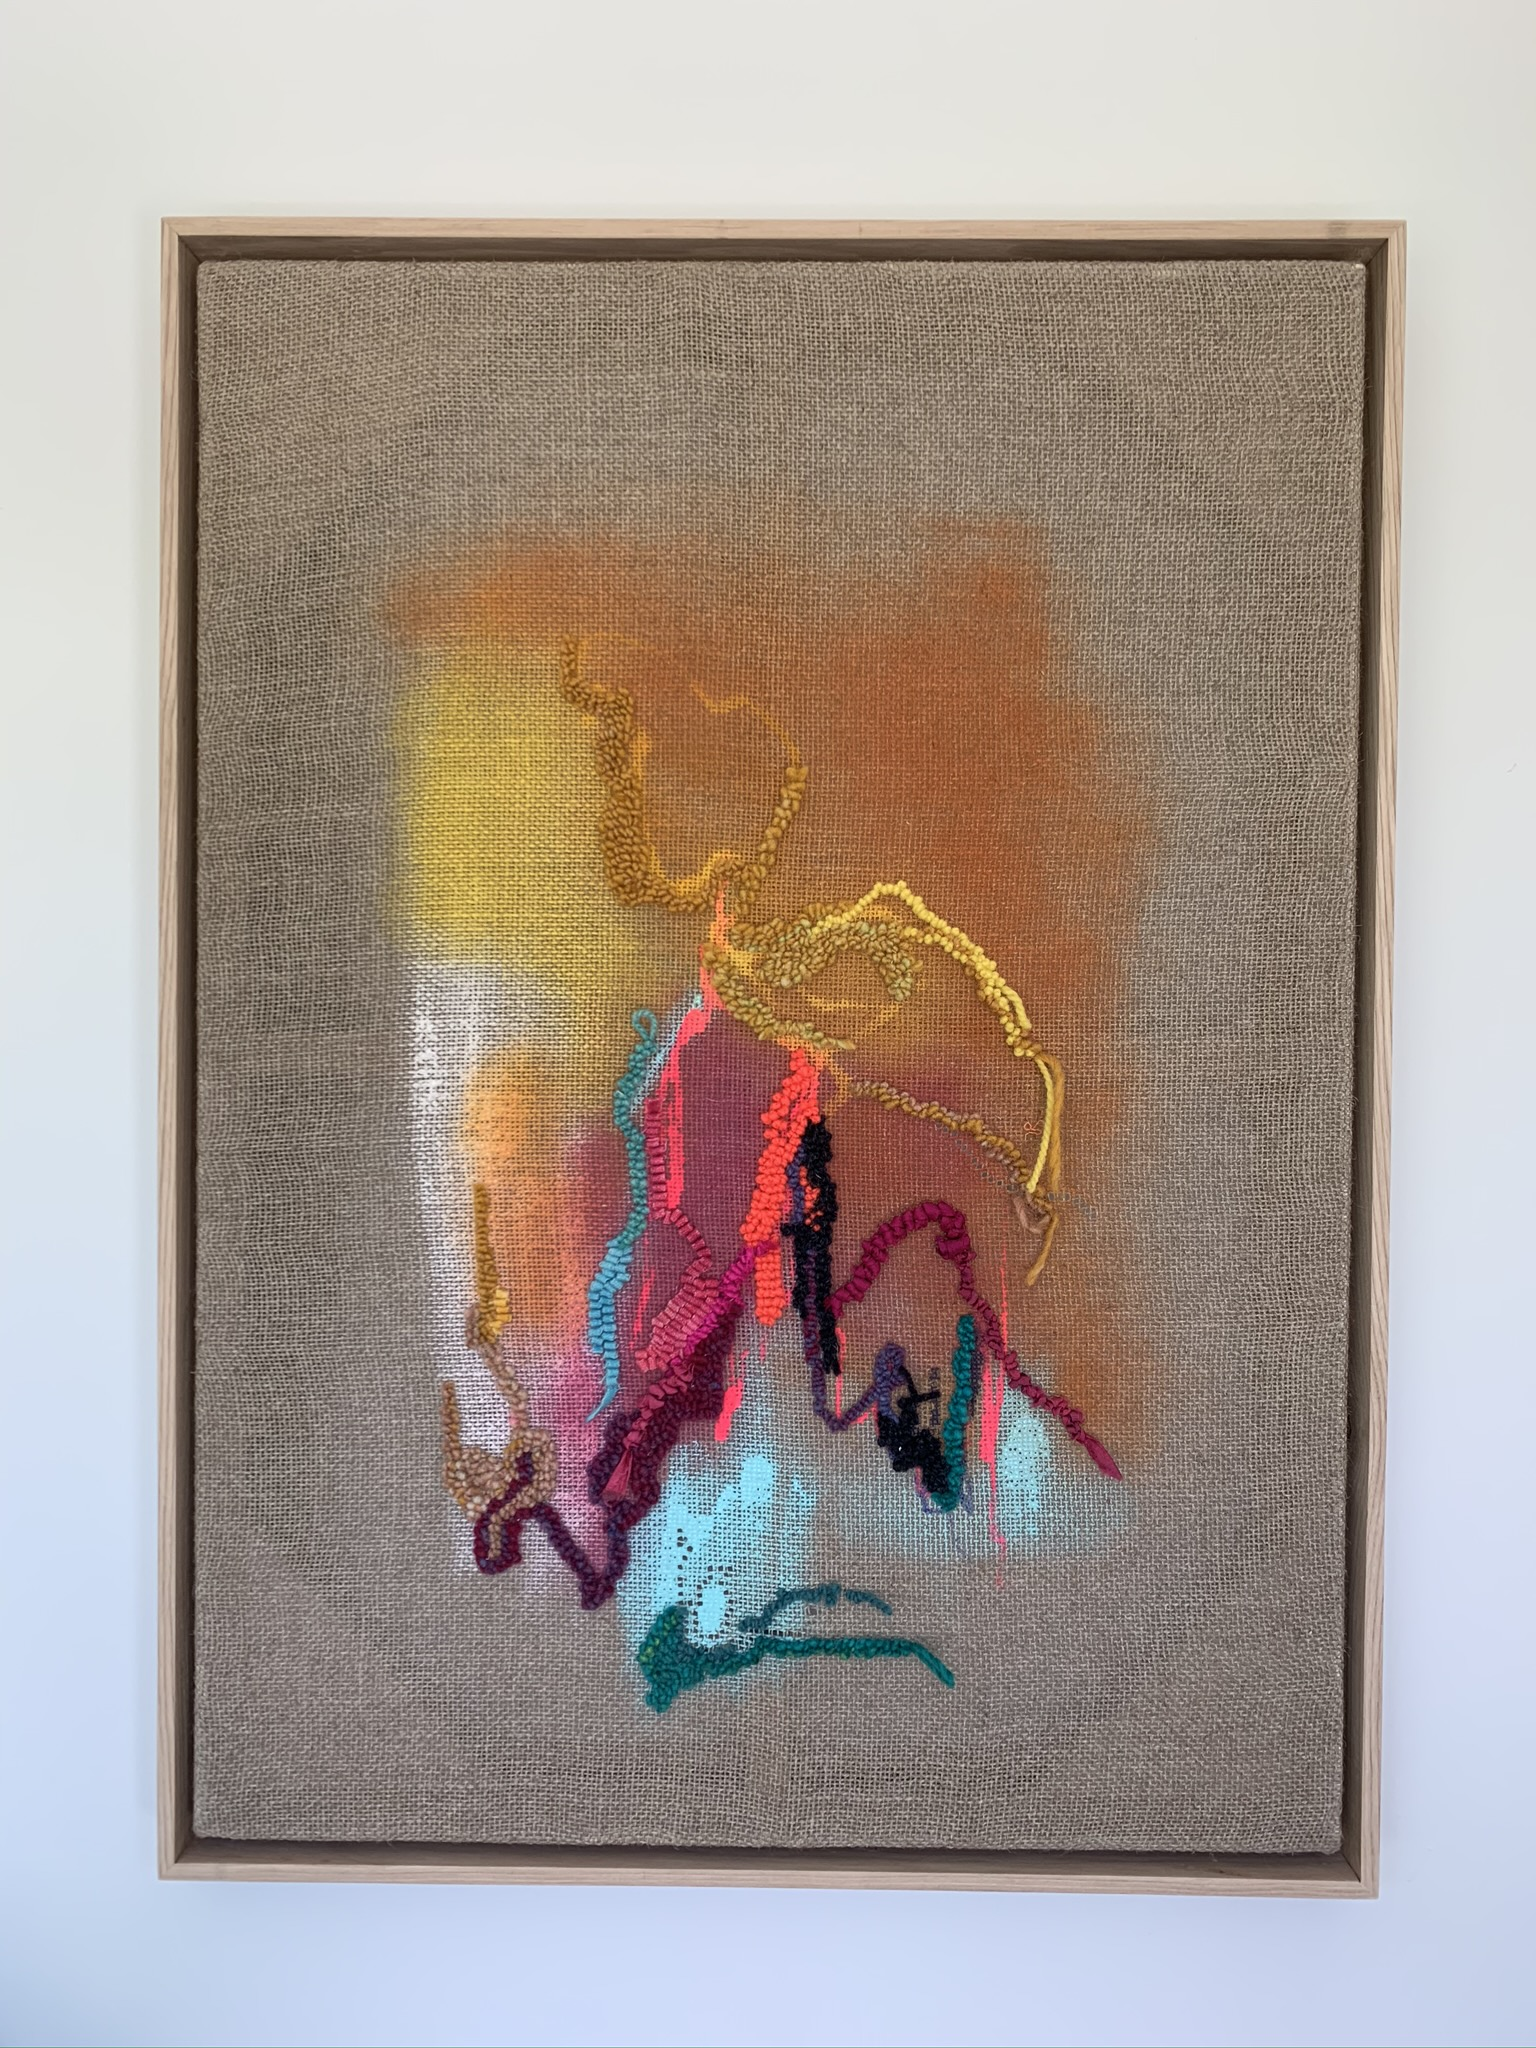 """Evidence is All Around, acrylic paint, hooked wool, and silk on linen, 24"""" x 30"""" (framed) - Kara McIntosh"""